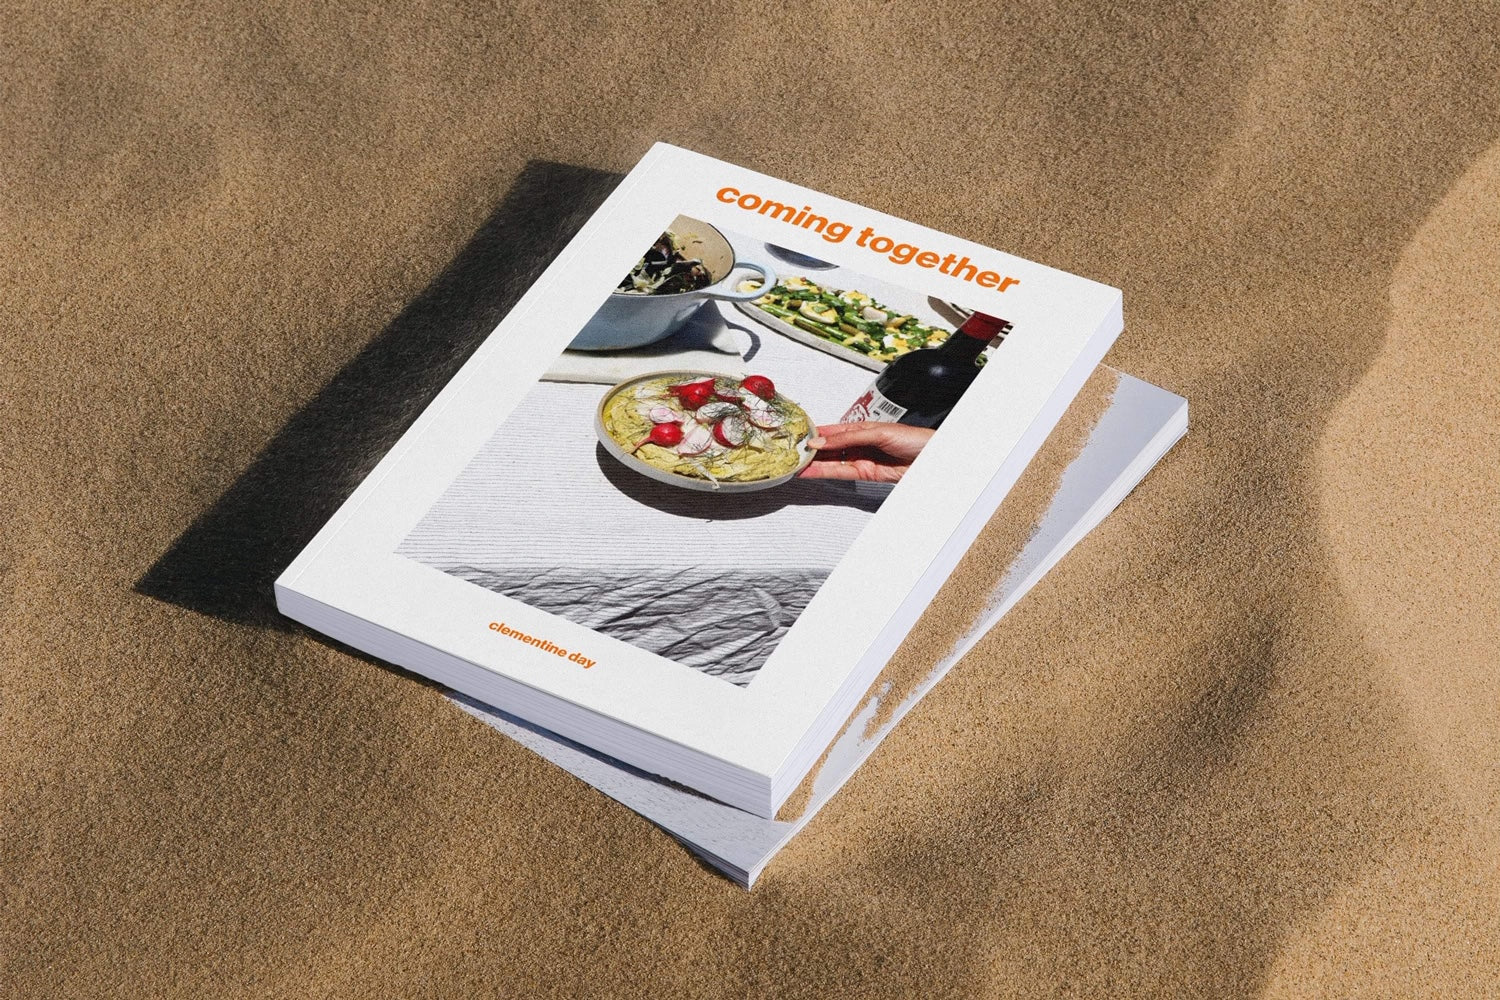 Coming Together/ Cookbook